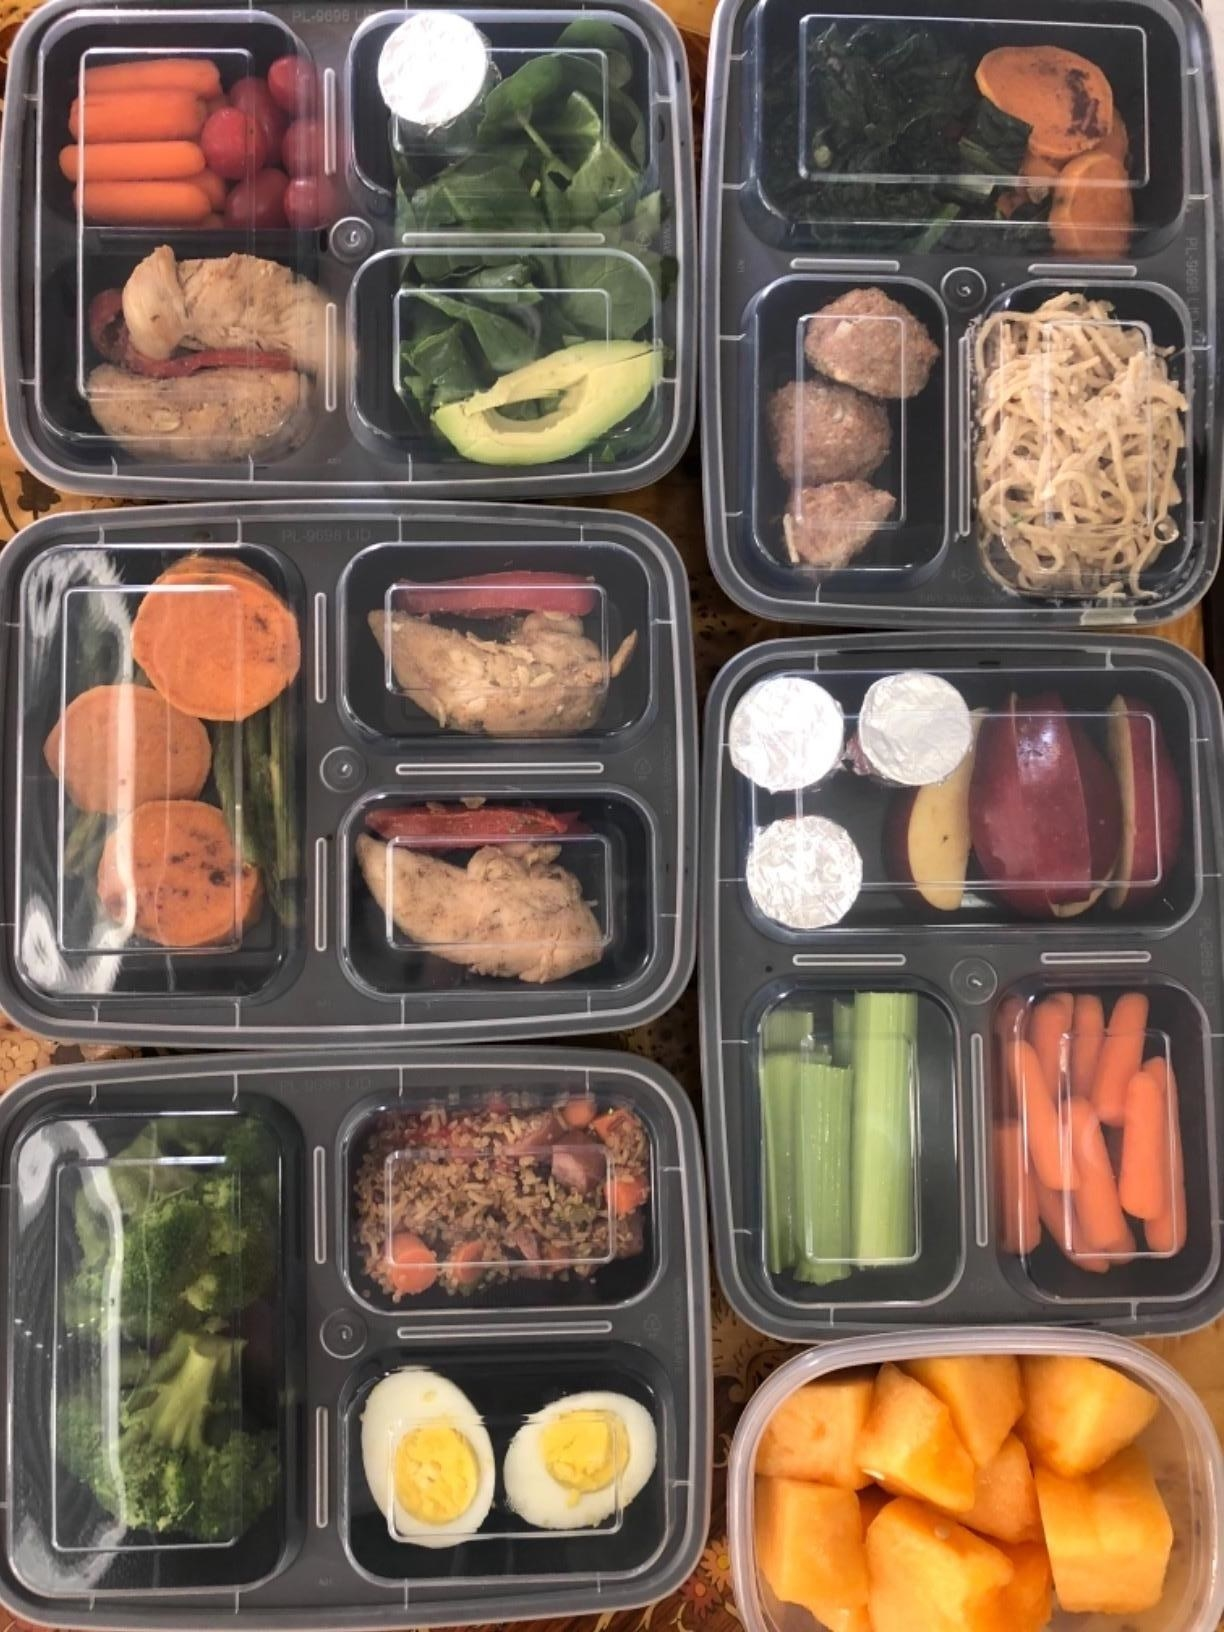 """These containers have three compartments to help you perfectly portion out your food. They are reusable, microwavable, and dishwasher-safe. Plus, they're BPA-free. """"I use meal prep containers that fit in my lunchbox. Sunday night, I can make an entire week's worth of lunches for work. Then in the mornings I can just grab and go and avoid that hectic 'Crap! I need food for lunch!' scramble."""" —gingersnaps1092Get a pack of 20 takeout containers and lids from Amazon for $19.99."""